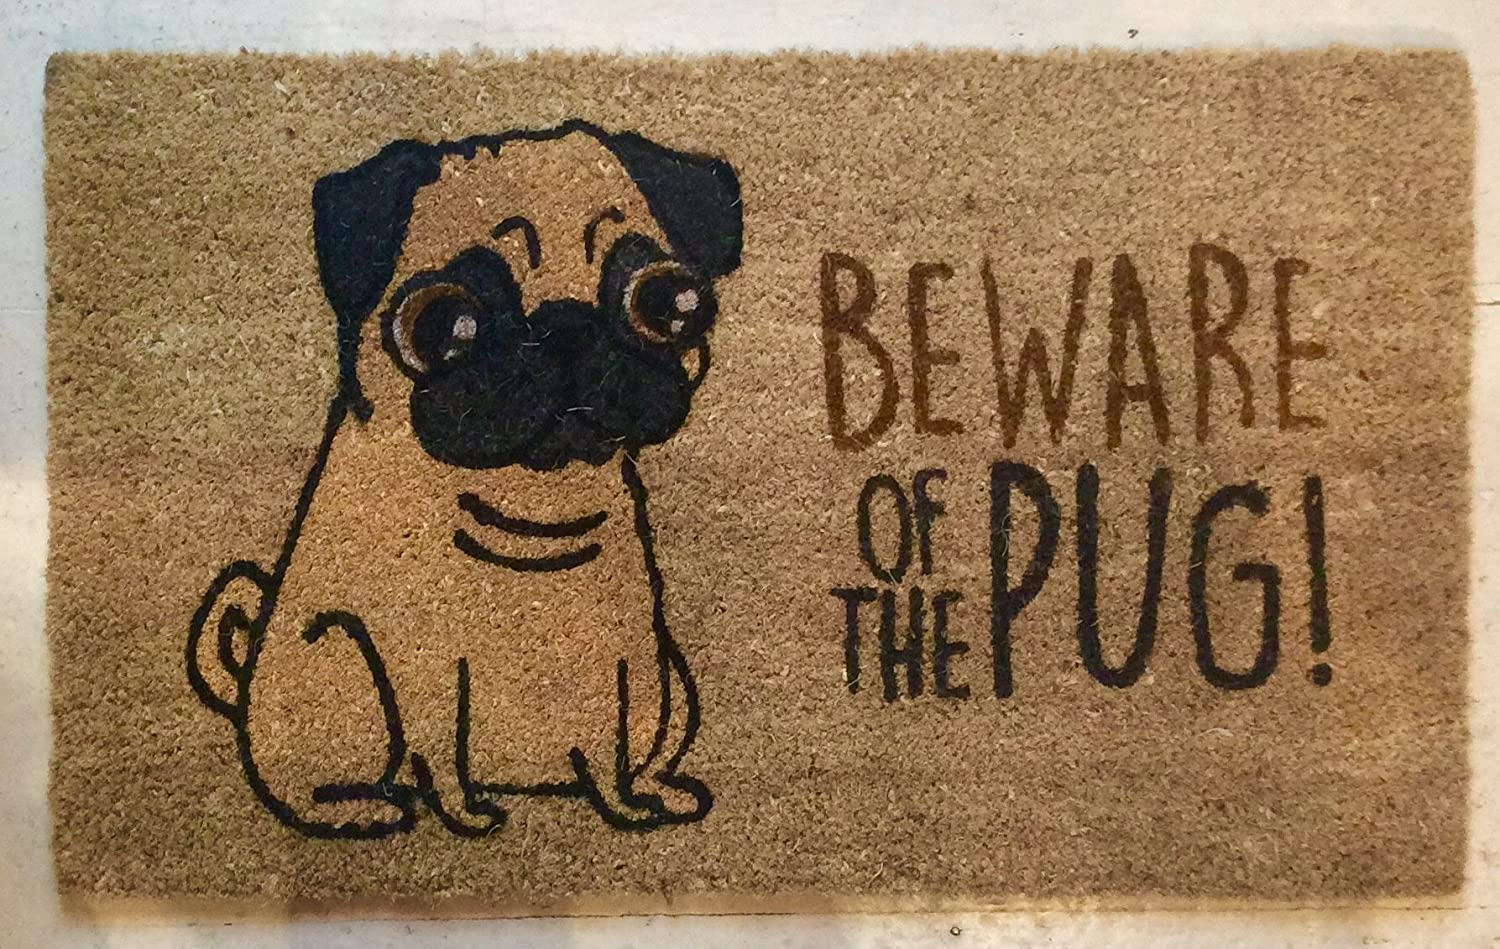 Beware of the Pug doormat: Amazon.co.uk: Kitchen & Home